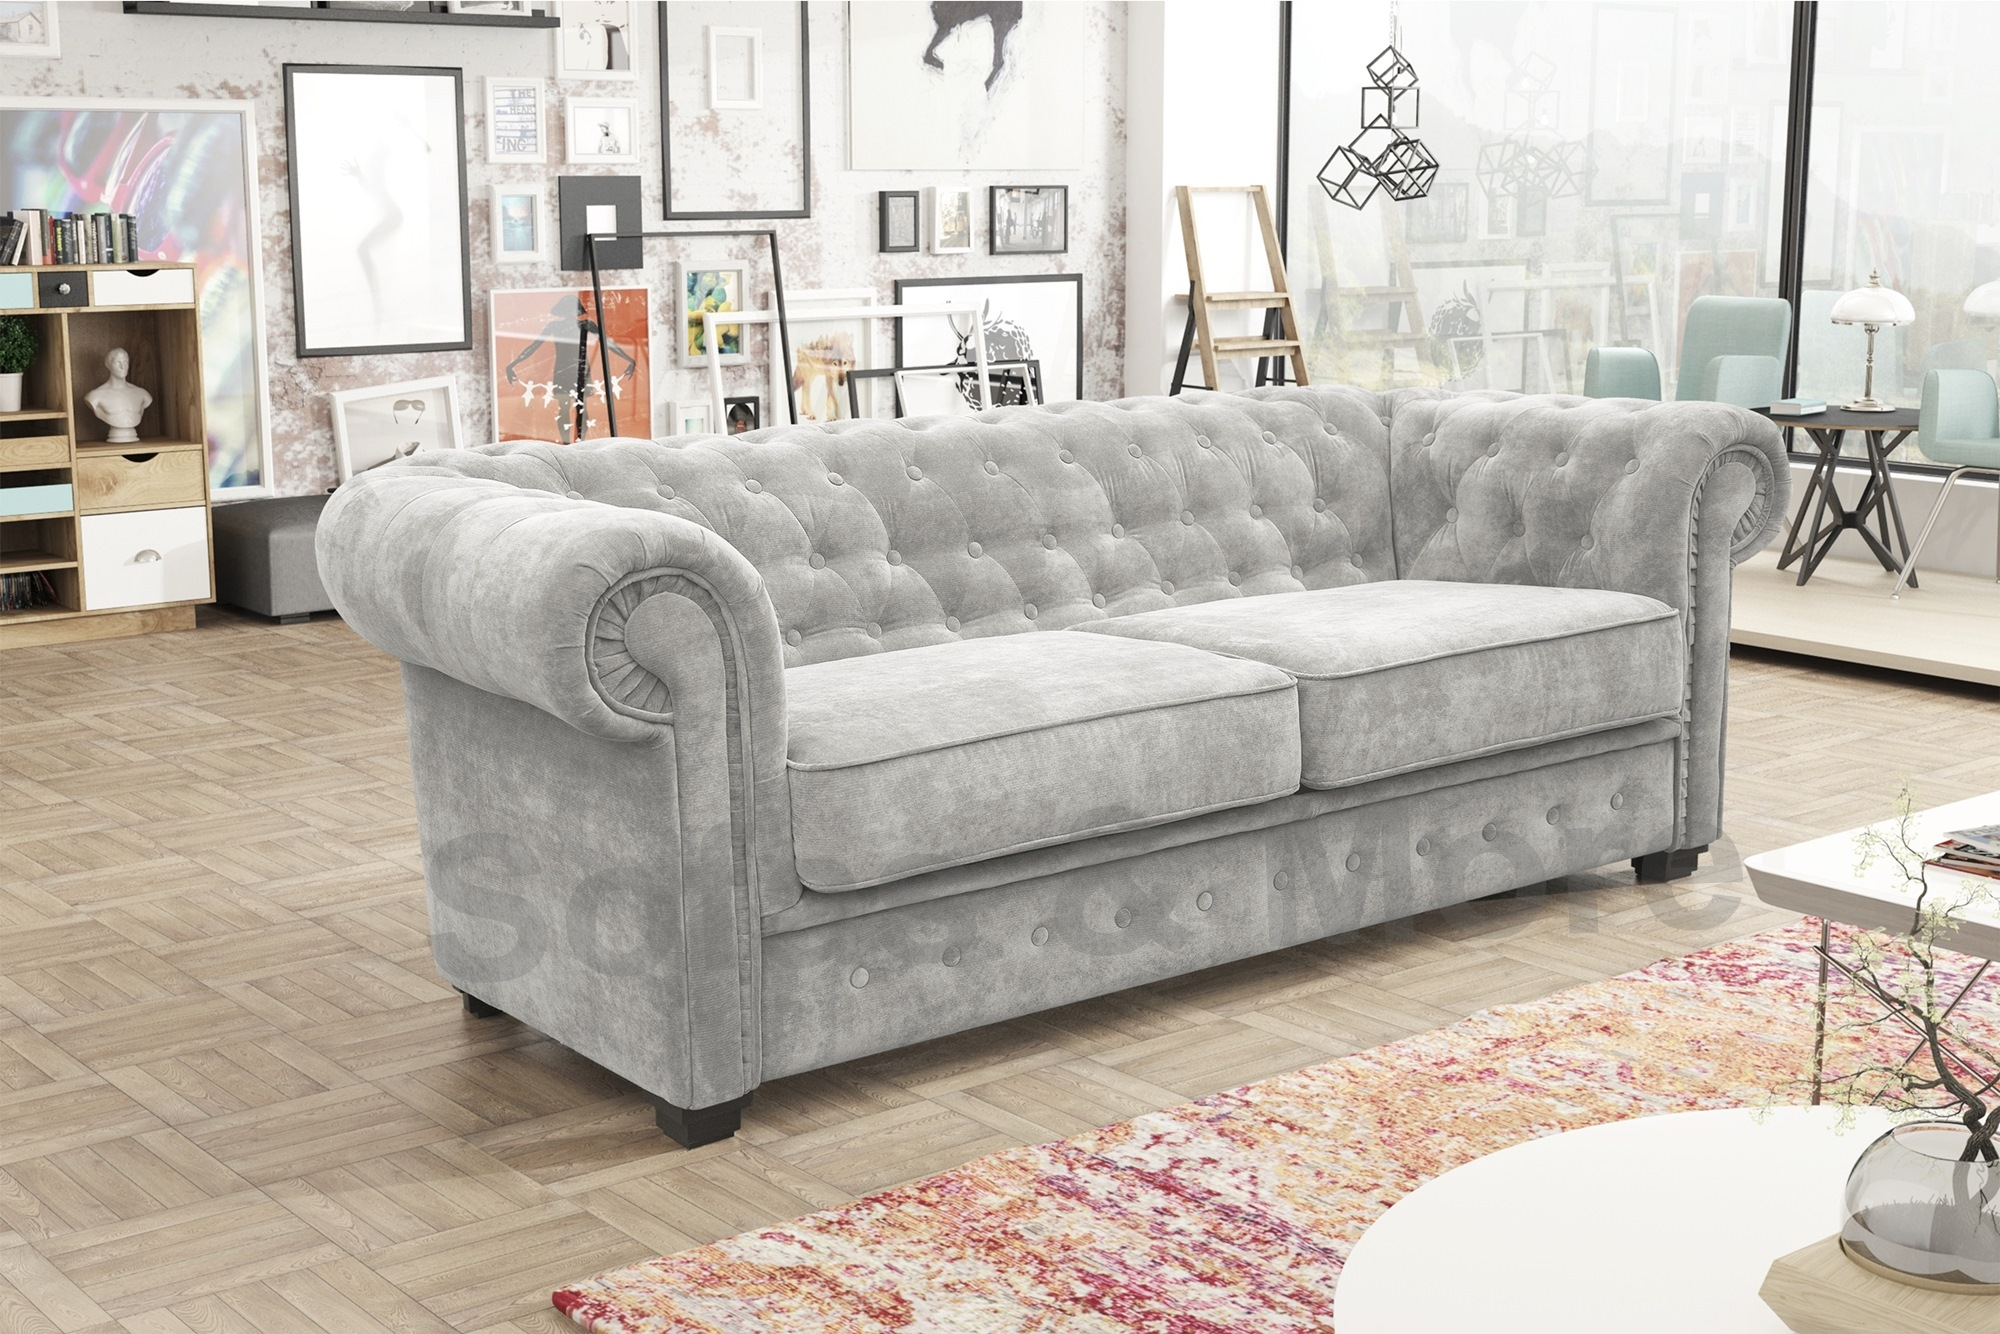 Venus Chesterfield Style 3 Seater Sofa Bed Armchair Fabric